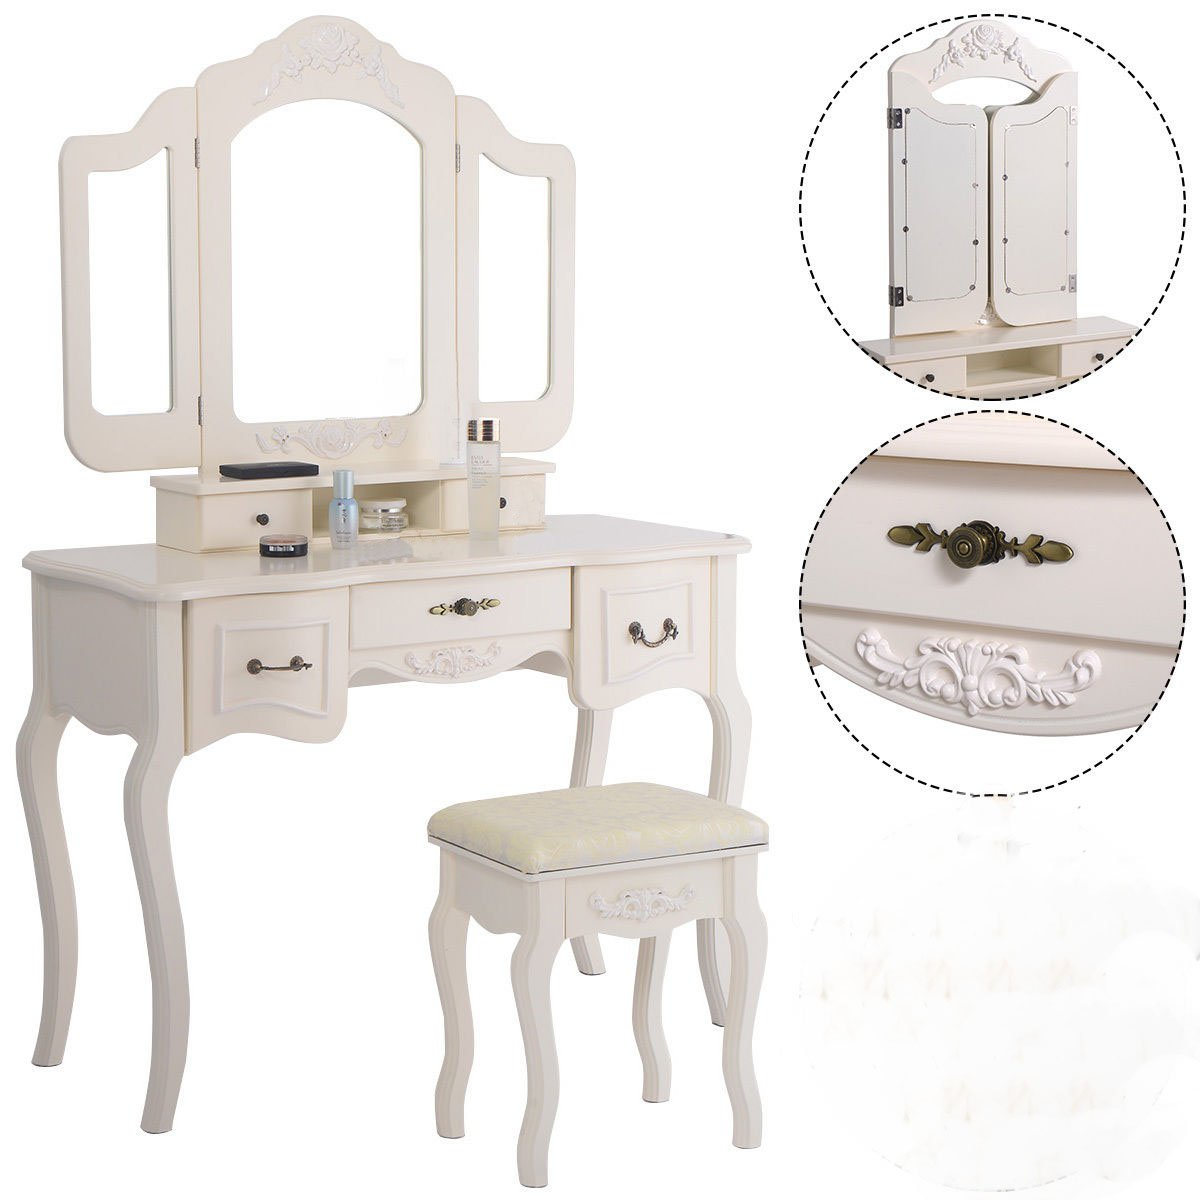 Tri Folding Vintage White Vanity Makeup Dressing Table Set 5 Drawers &stool